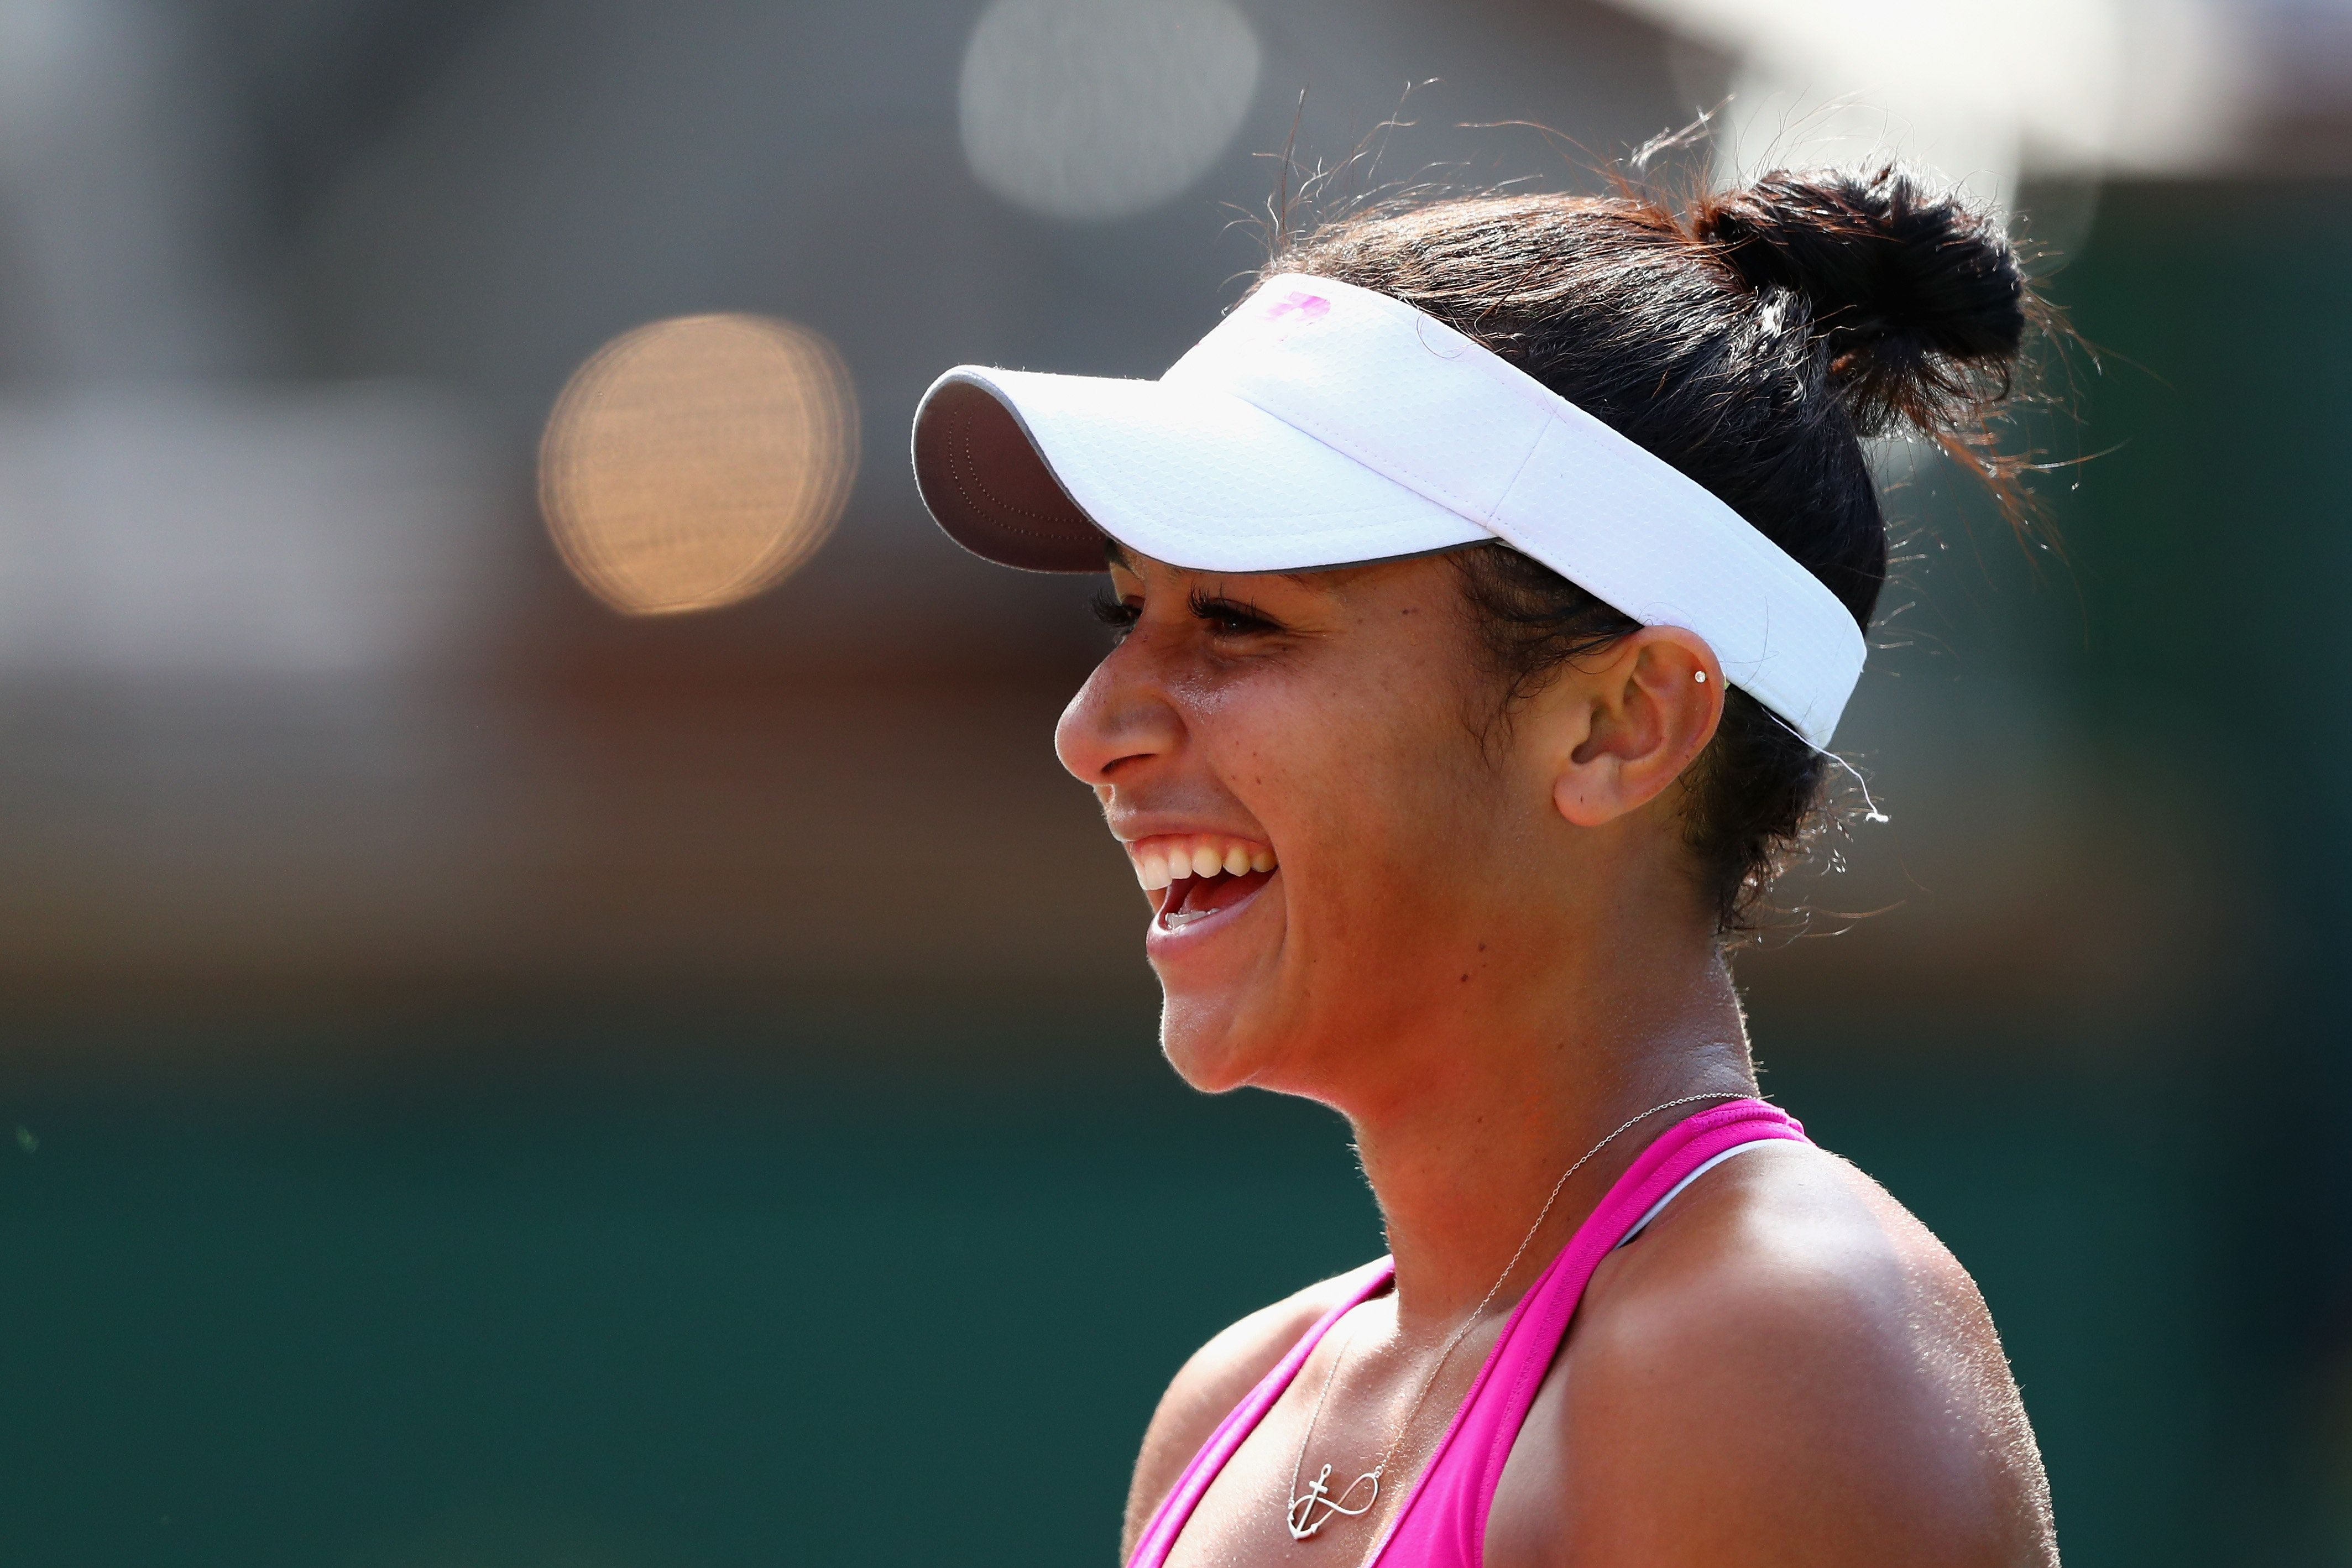 Heather Watson Claps Back At Trolls: 'Sport Isn't About Looking